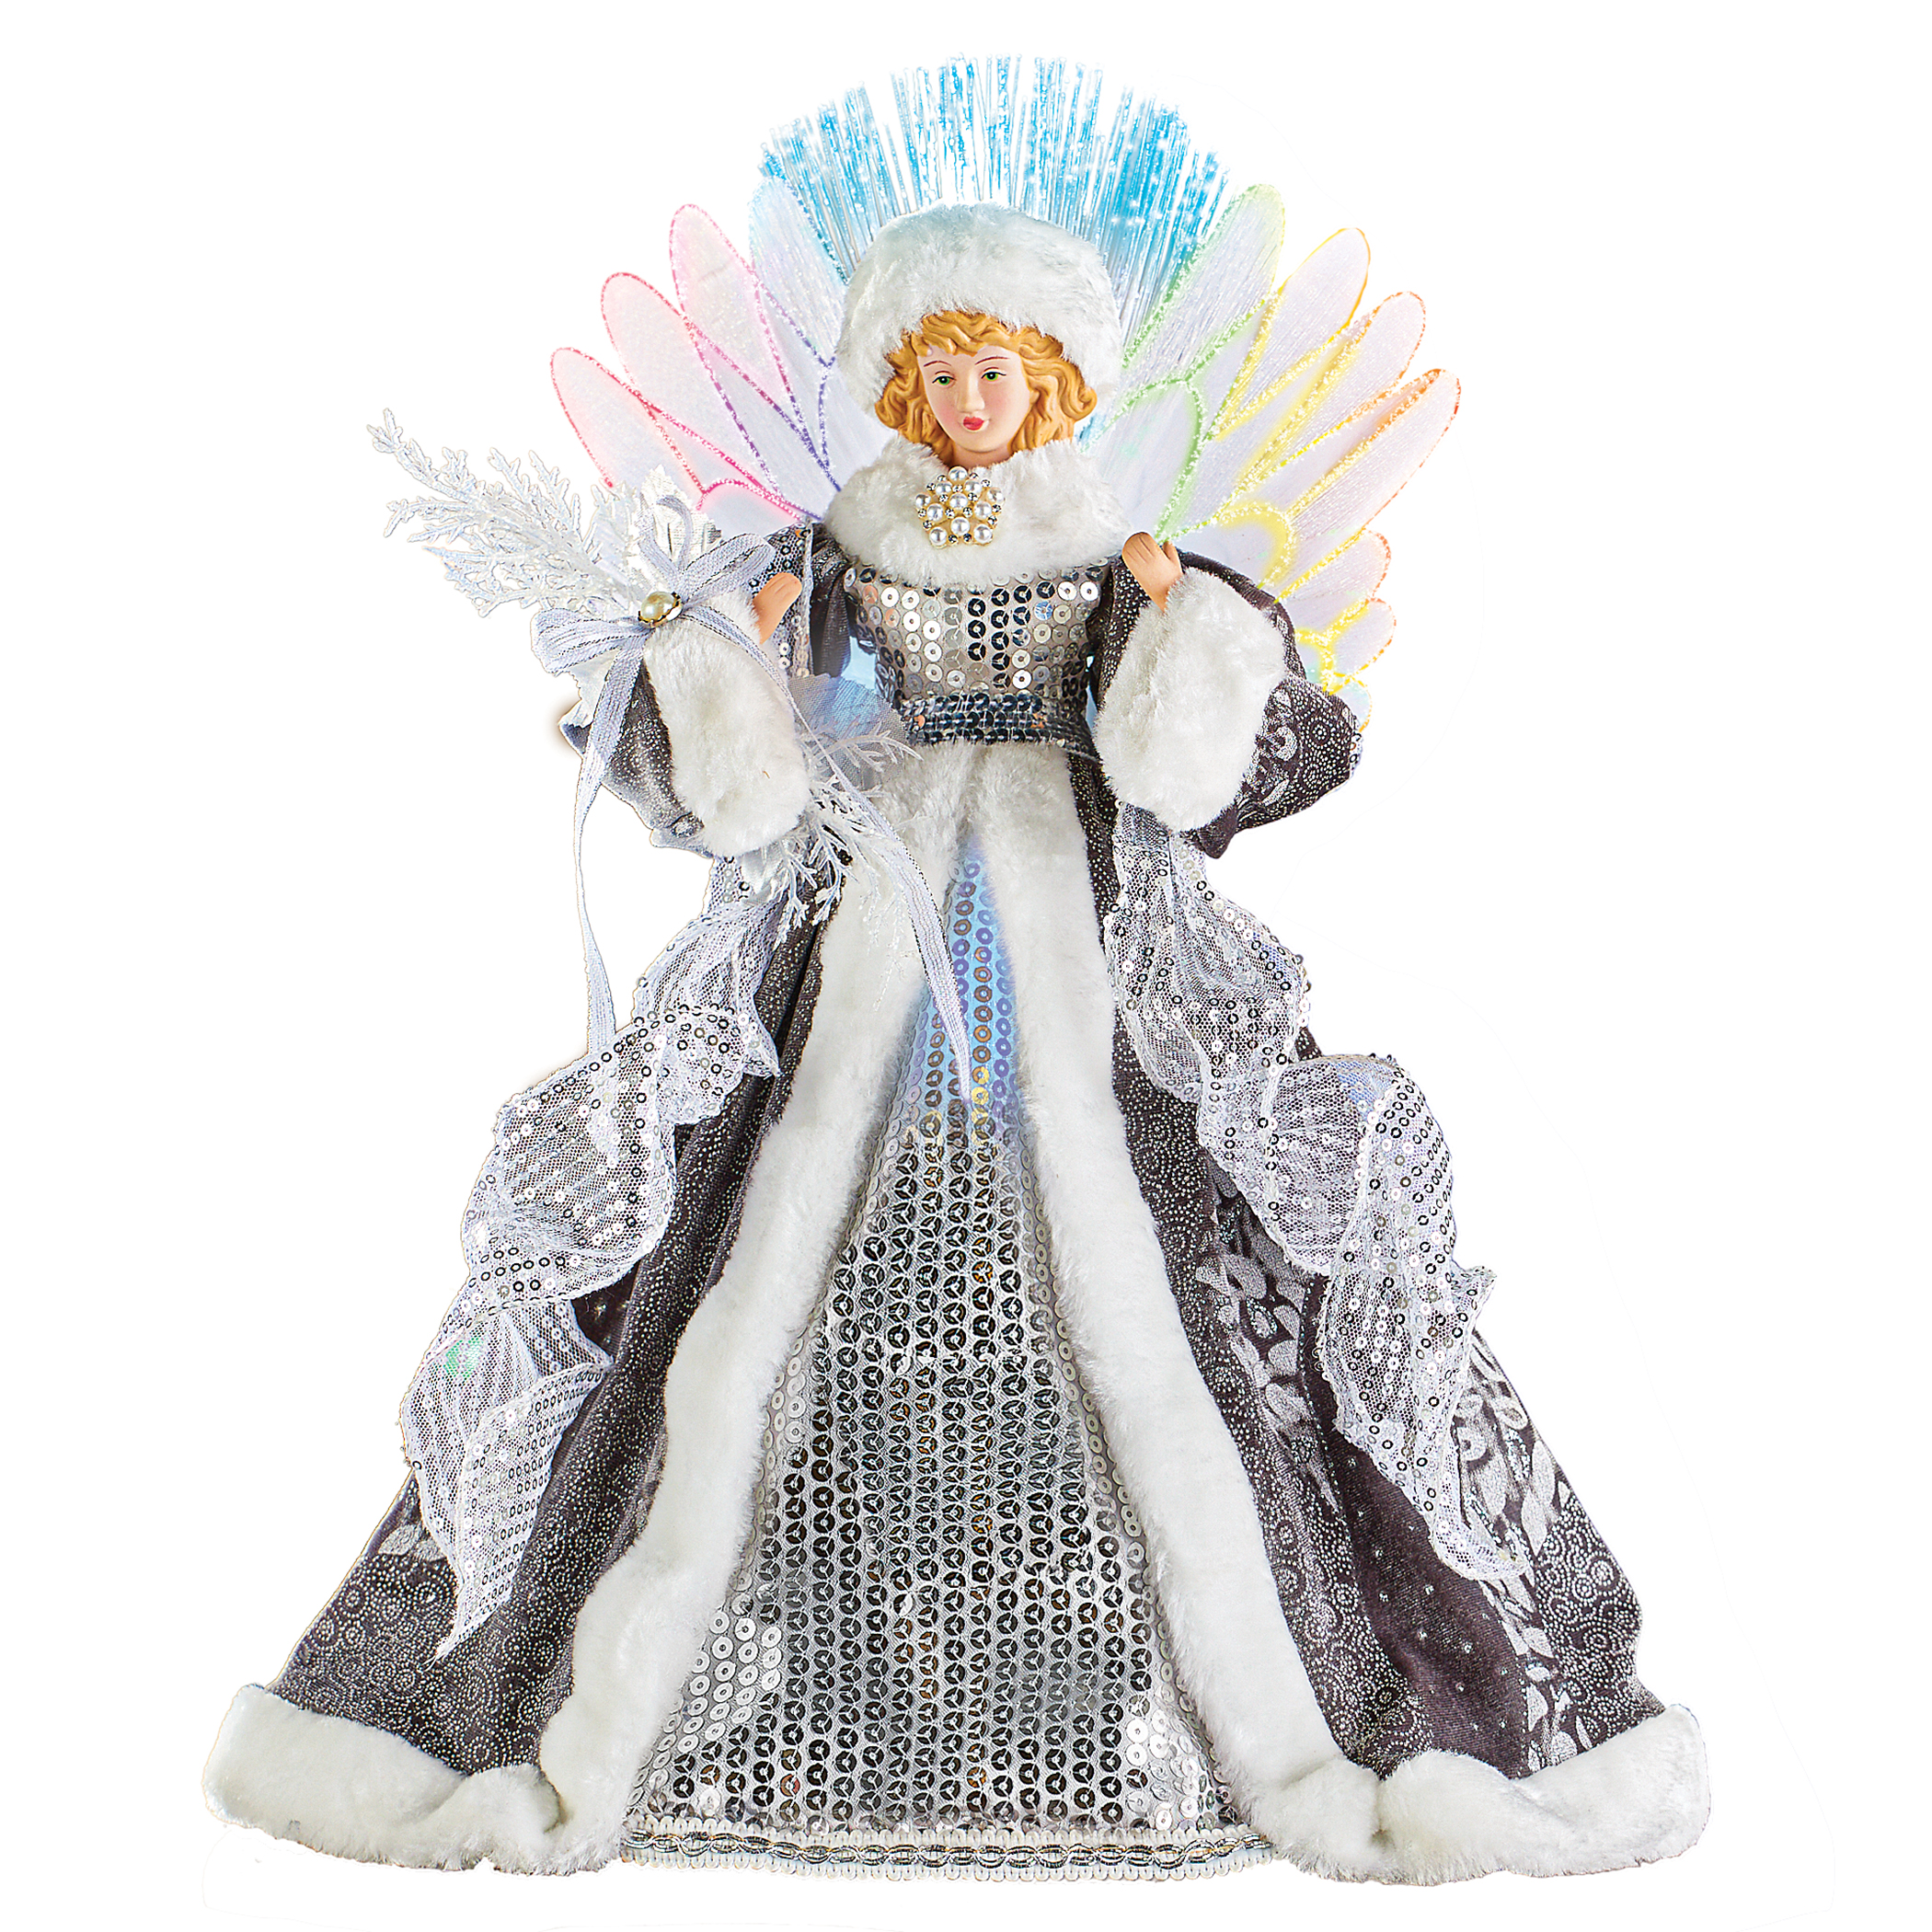 Enchanting Sequin Silver Angel Christmas Tree Topper Figurine With Dazzling Fiber Optic Lights Walmart Com Walmart Com